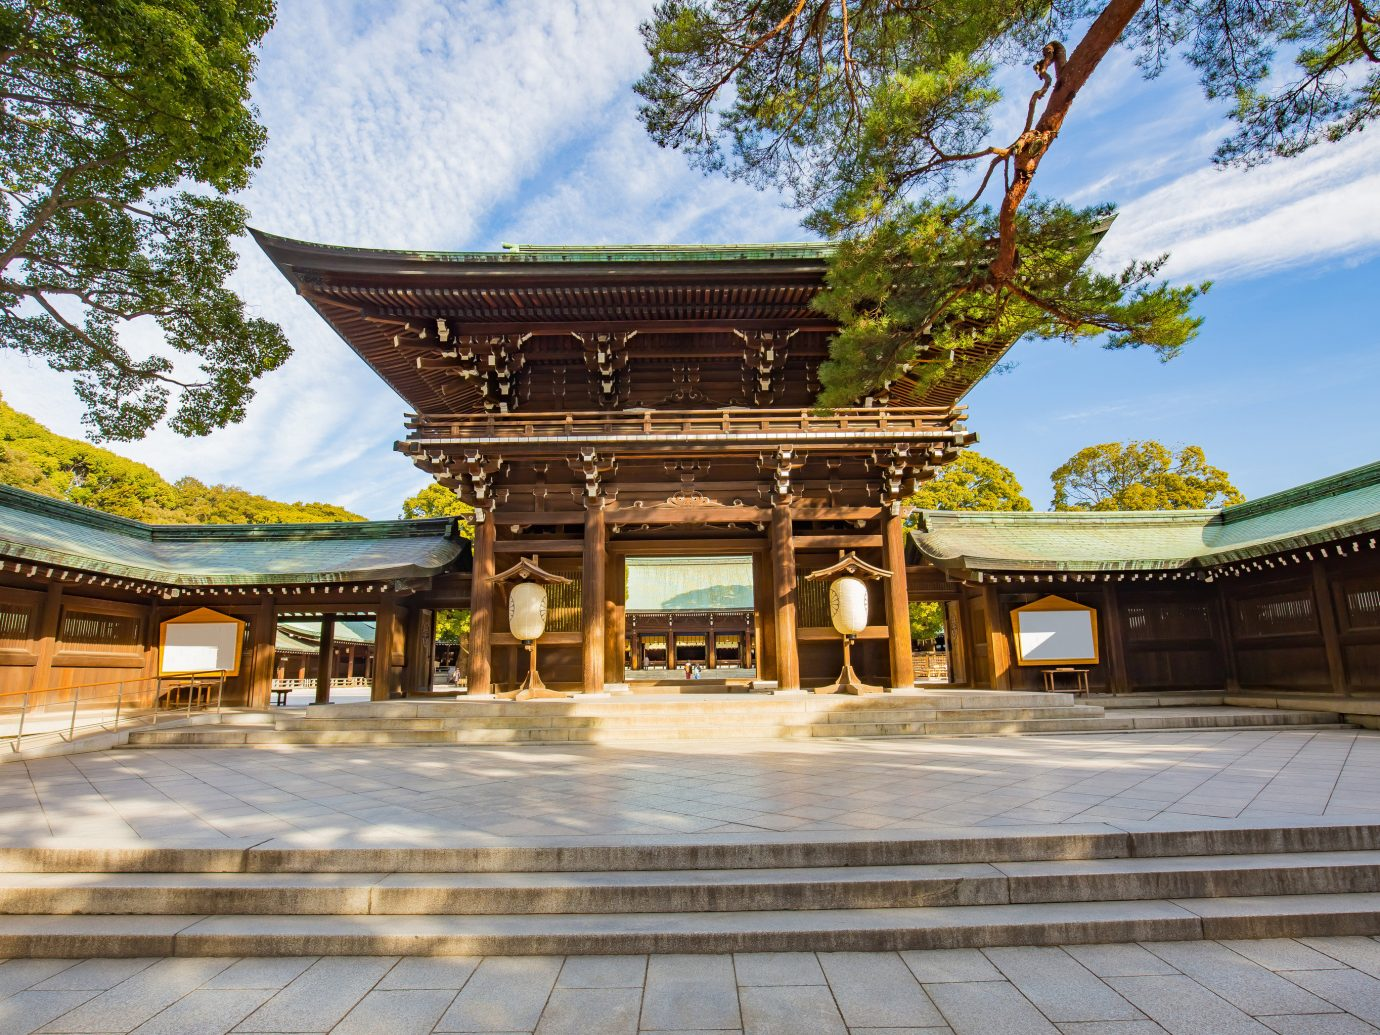 Japan Trip Ideas chinese architecture japanese architecture shinto shrine shrine historic site temple tourist attraction tree building pagoda leisure place of worship